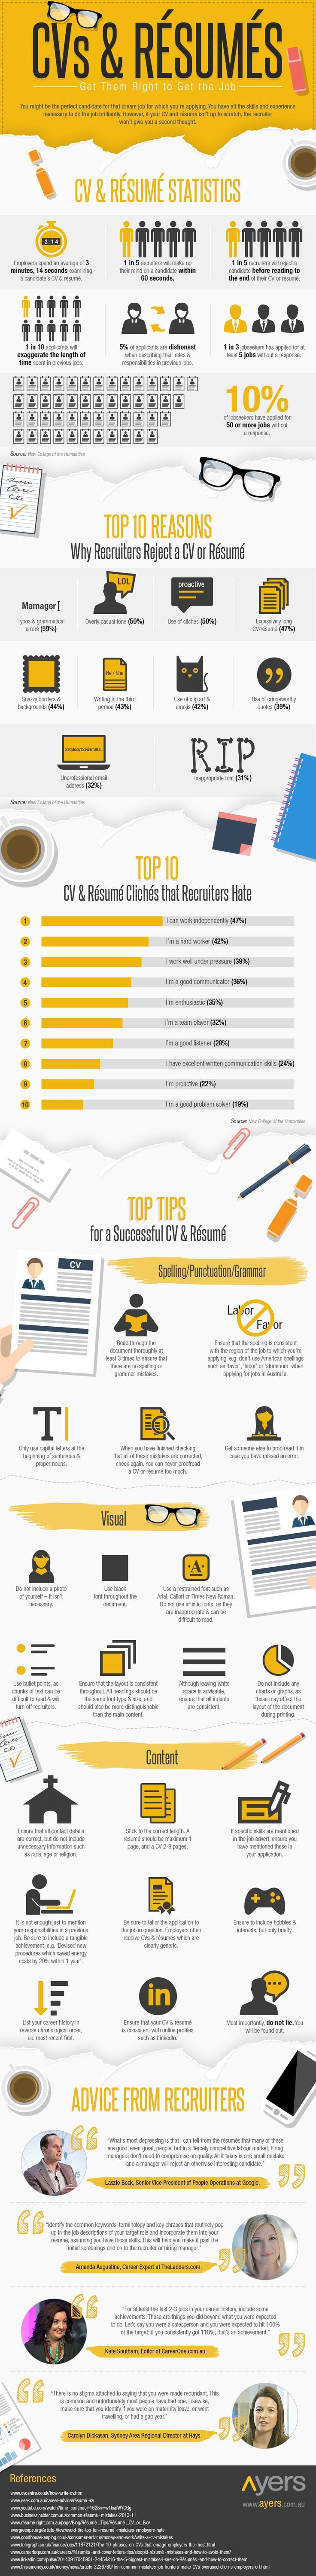 17 best images about infographic visual resumes creating a winning resume is vital to making a great first impression on potential employers your resume is the document that will help you present a